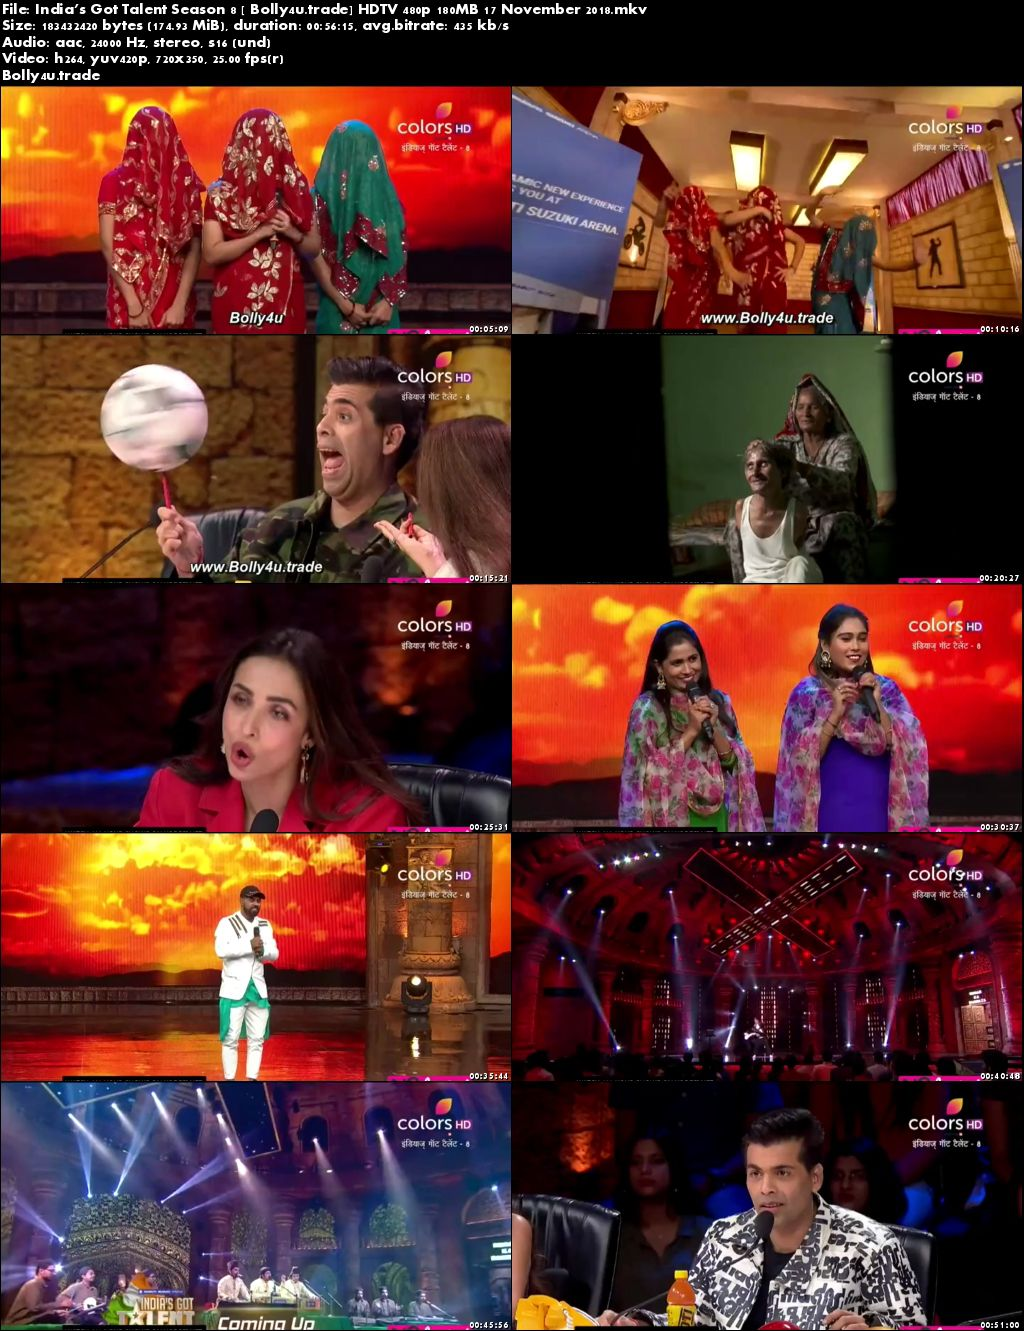 Indias Got Talent Season 8 HDTV 480p 180MB 17 November 2018 Download